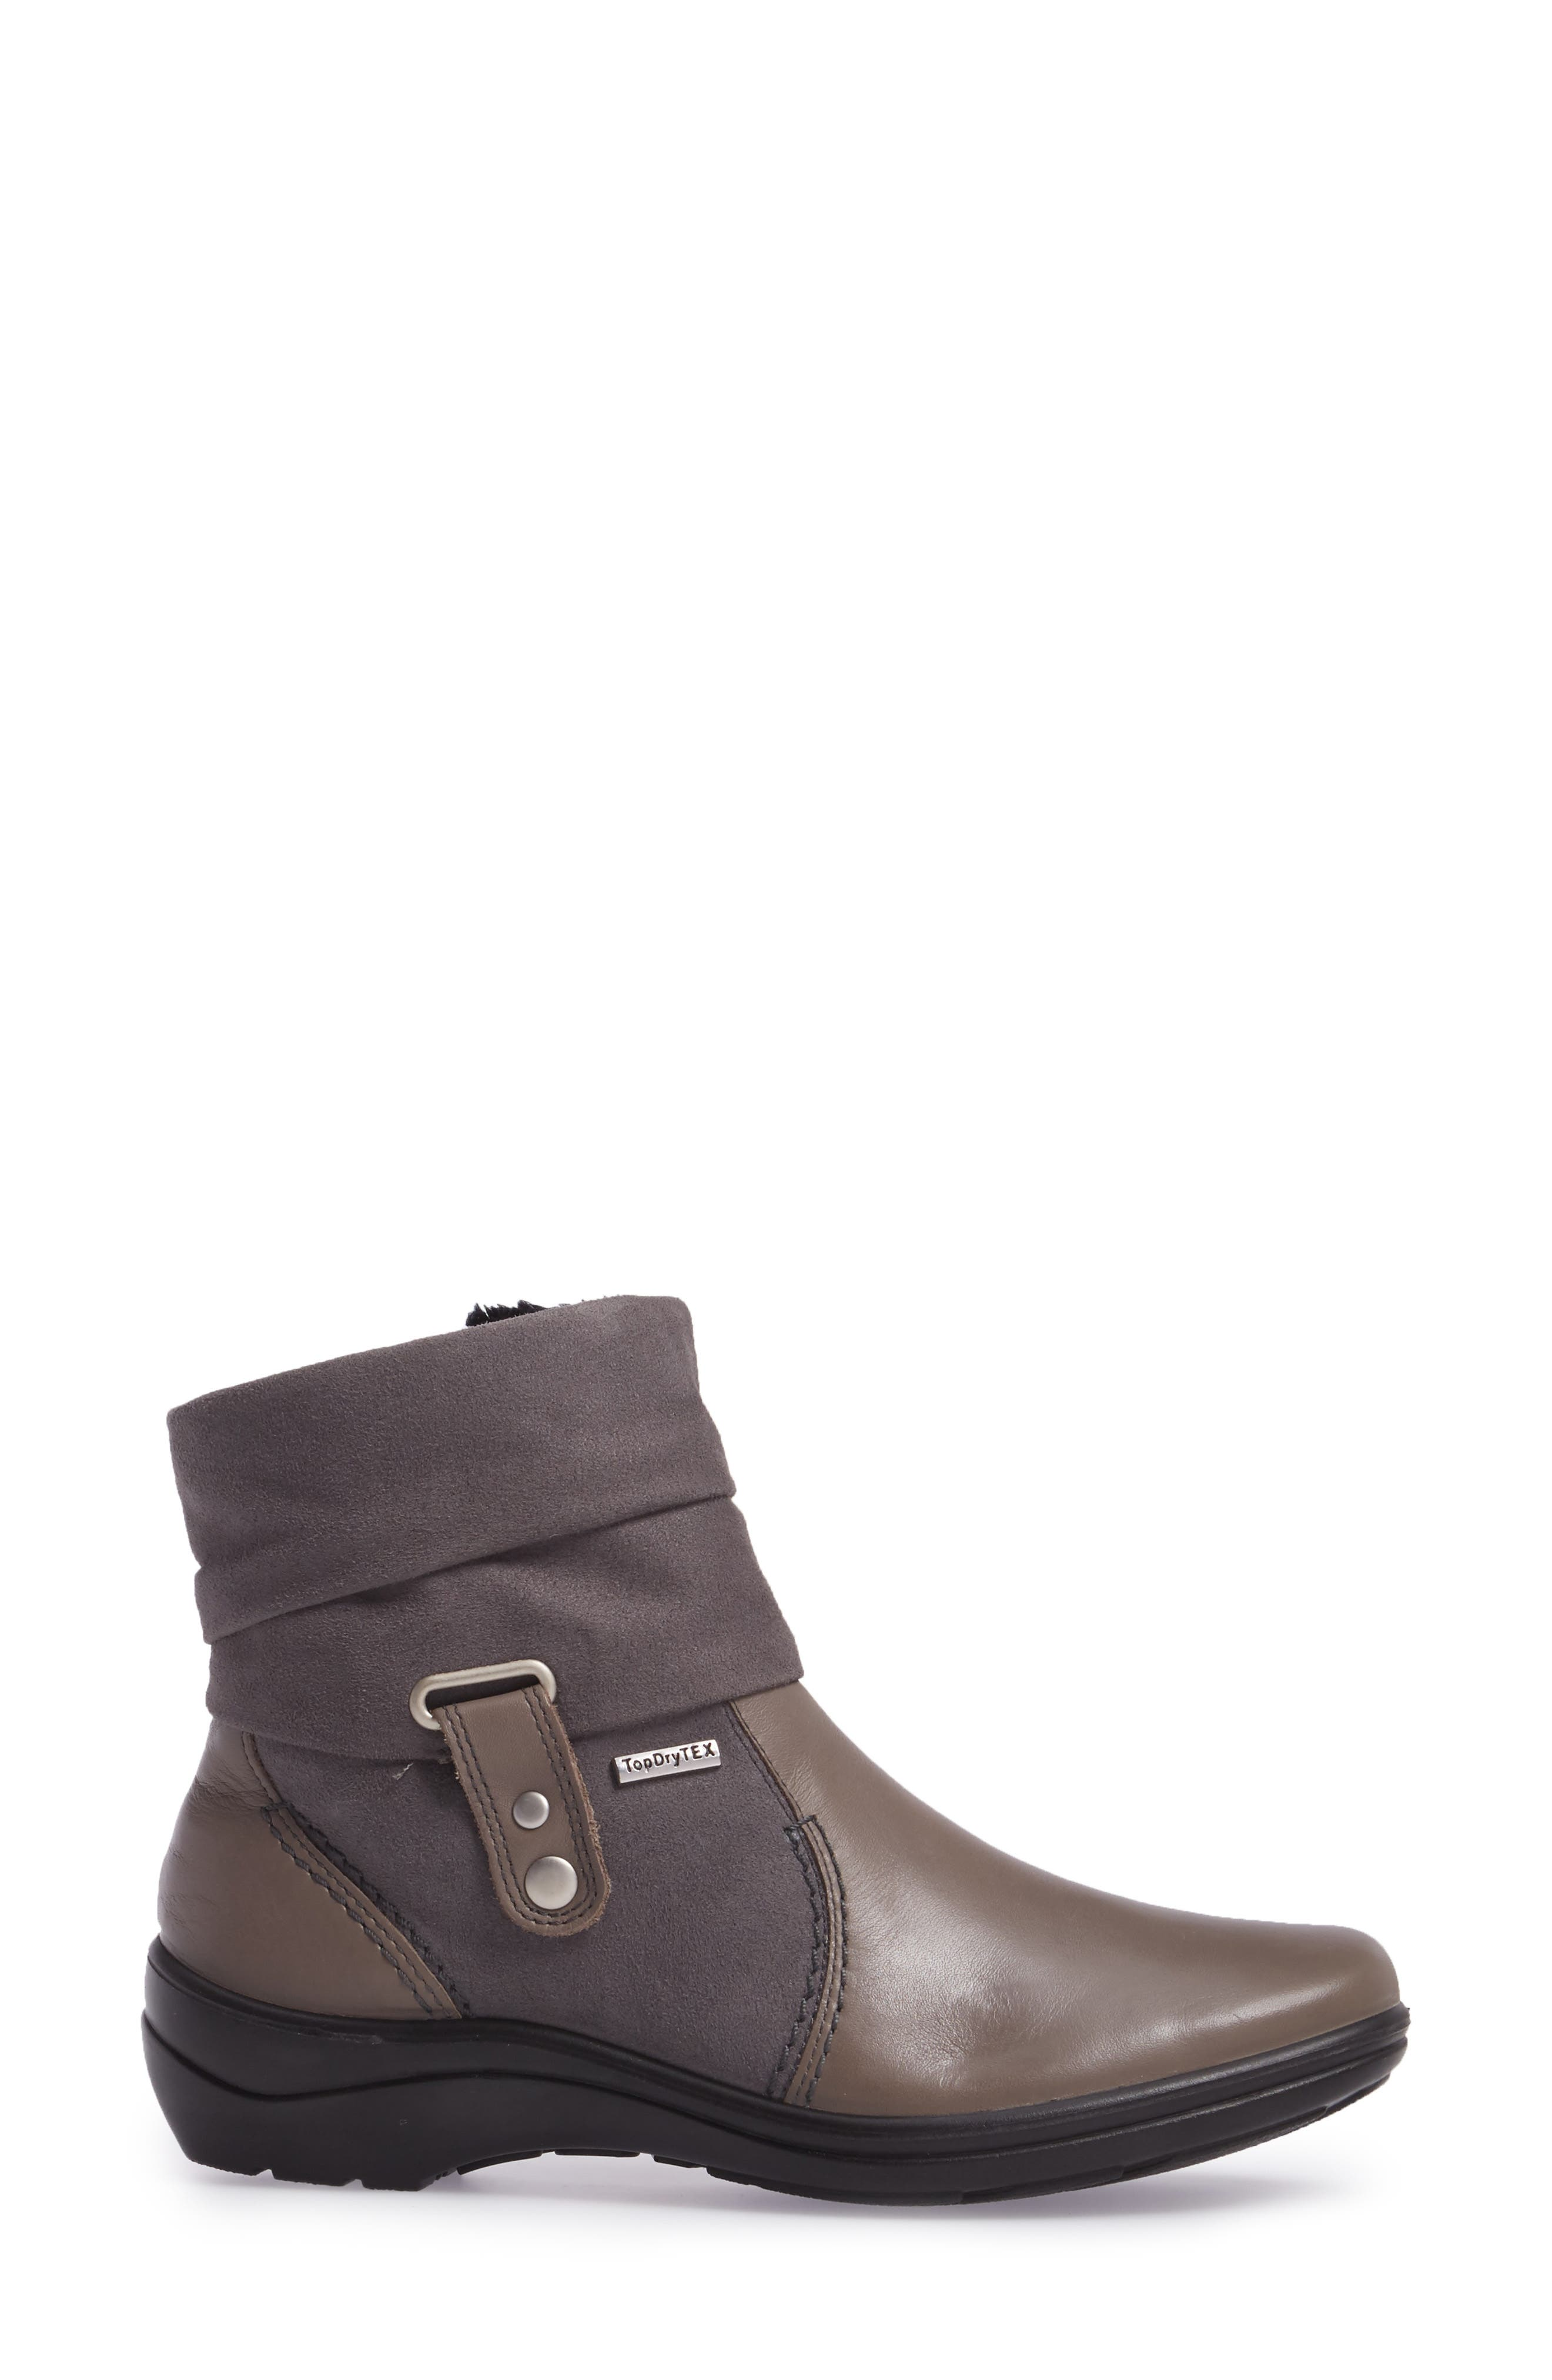 'Cassie 12' Boot,                             Alternate thumbnail 3, color,                             Grey Leather